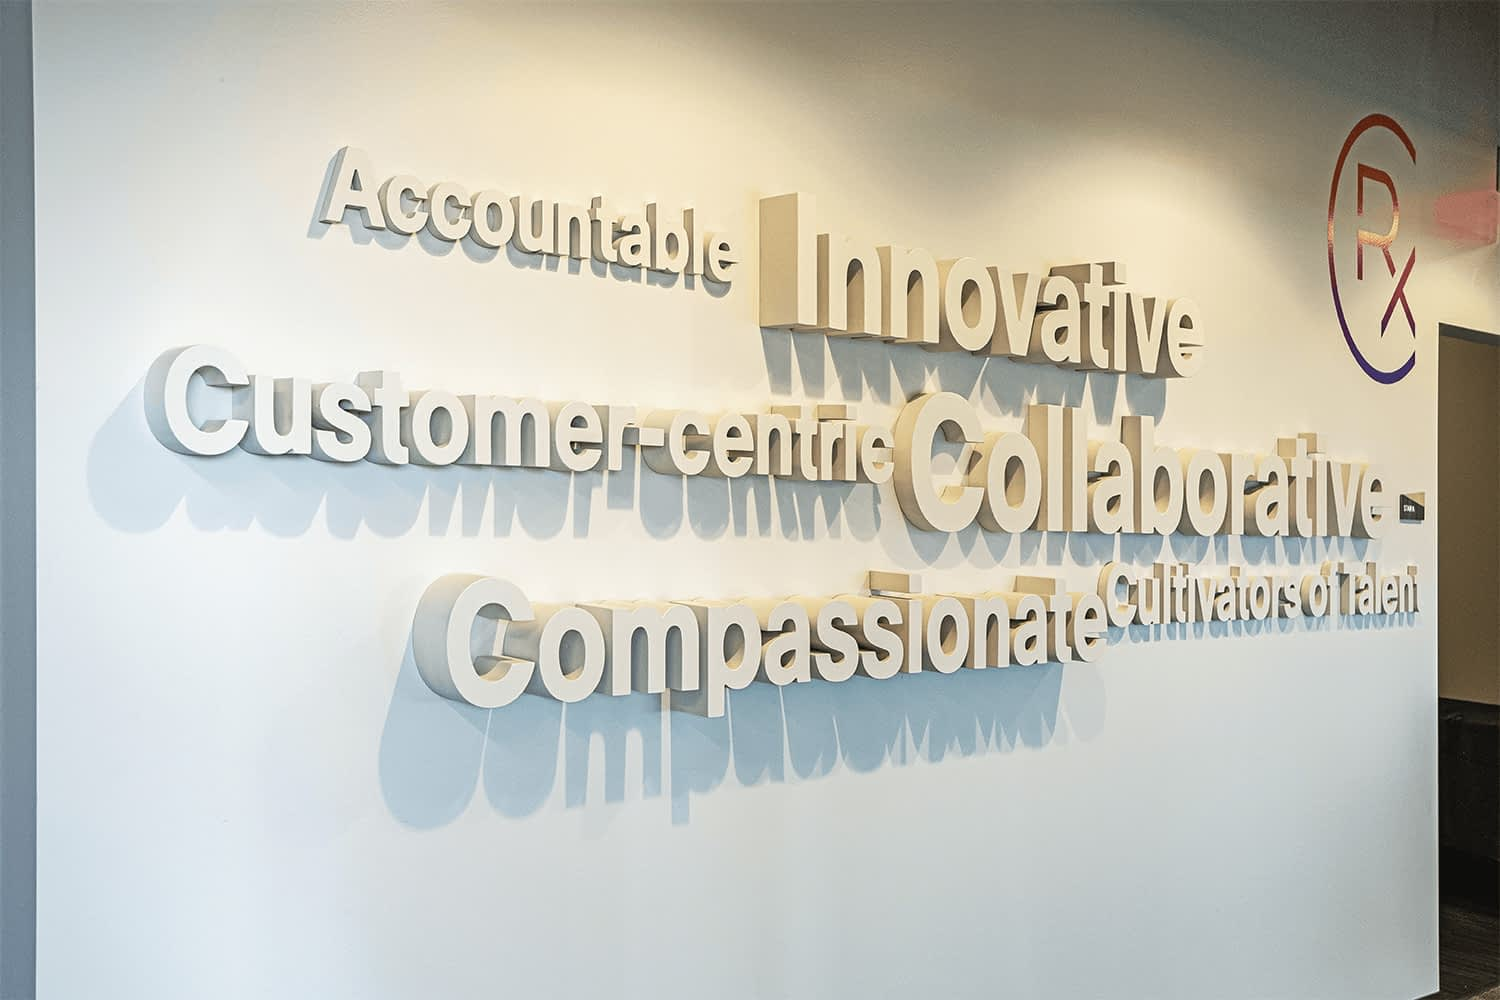 3D decorative word cloud built on a wall, reads: Accountable, Innovative, Customer-centric, Collaborative, Compassionate, Cultivators of Talent